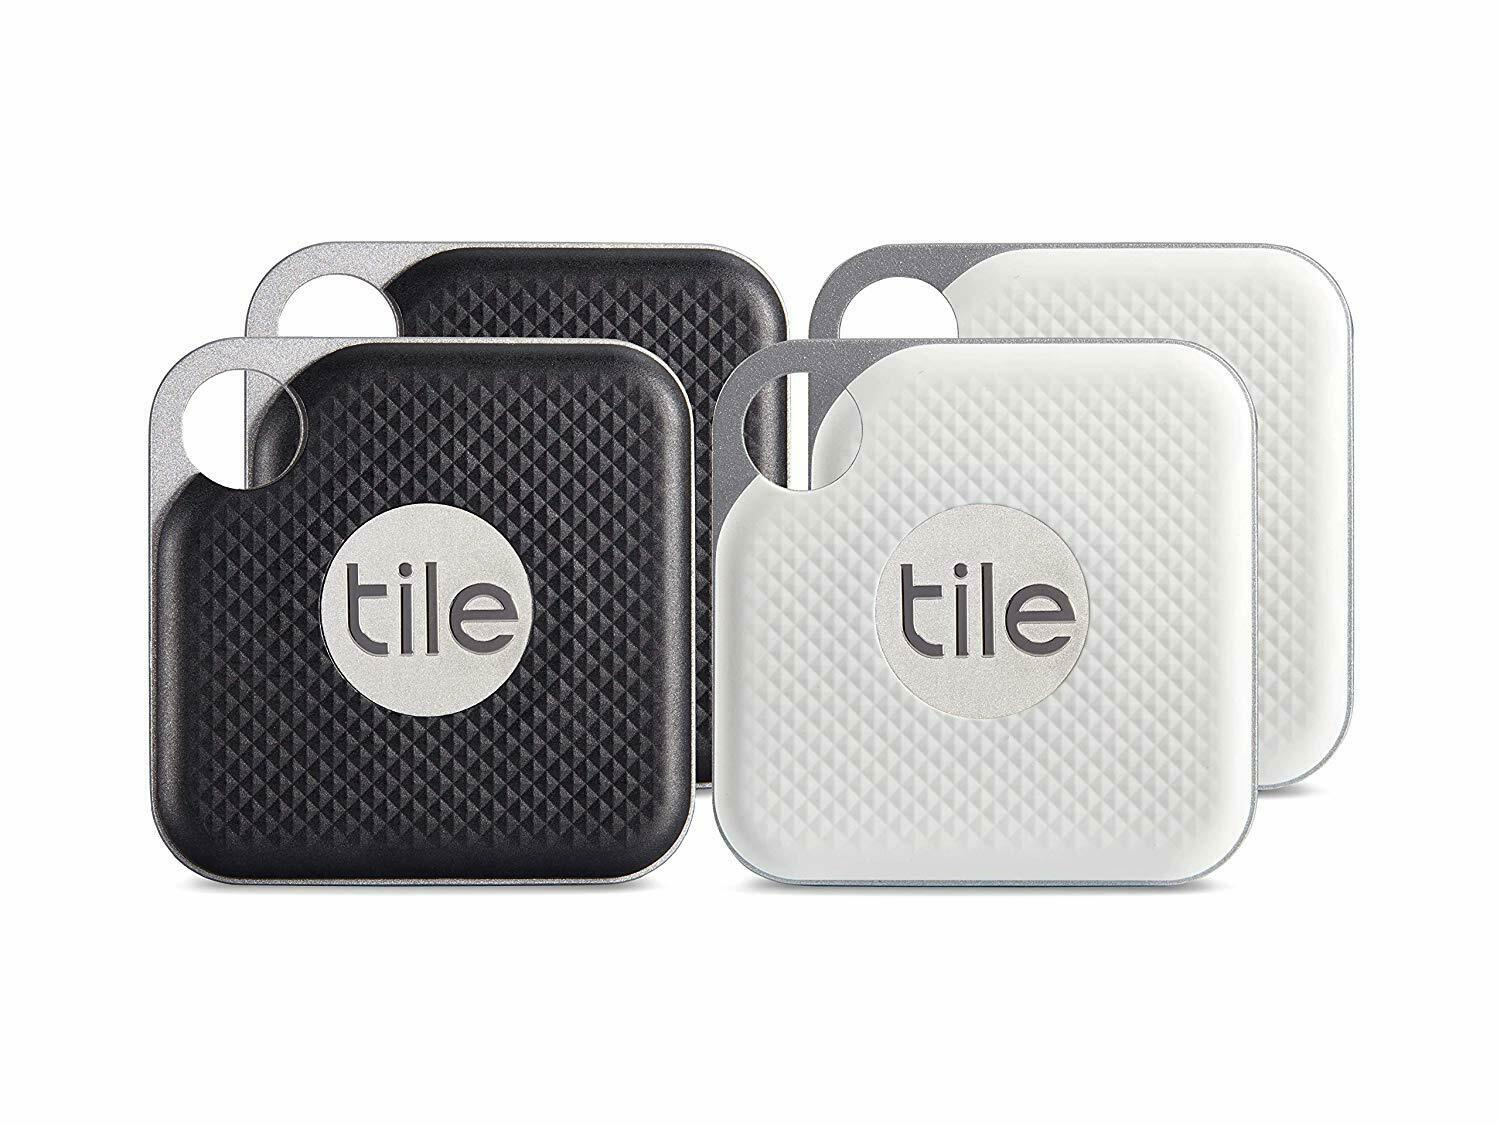 Tile Pro Combo Pack - Key Finder Bluetooth w/ Replaceable Ba